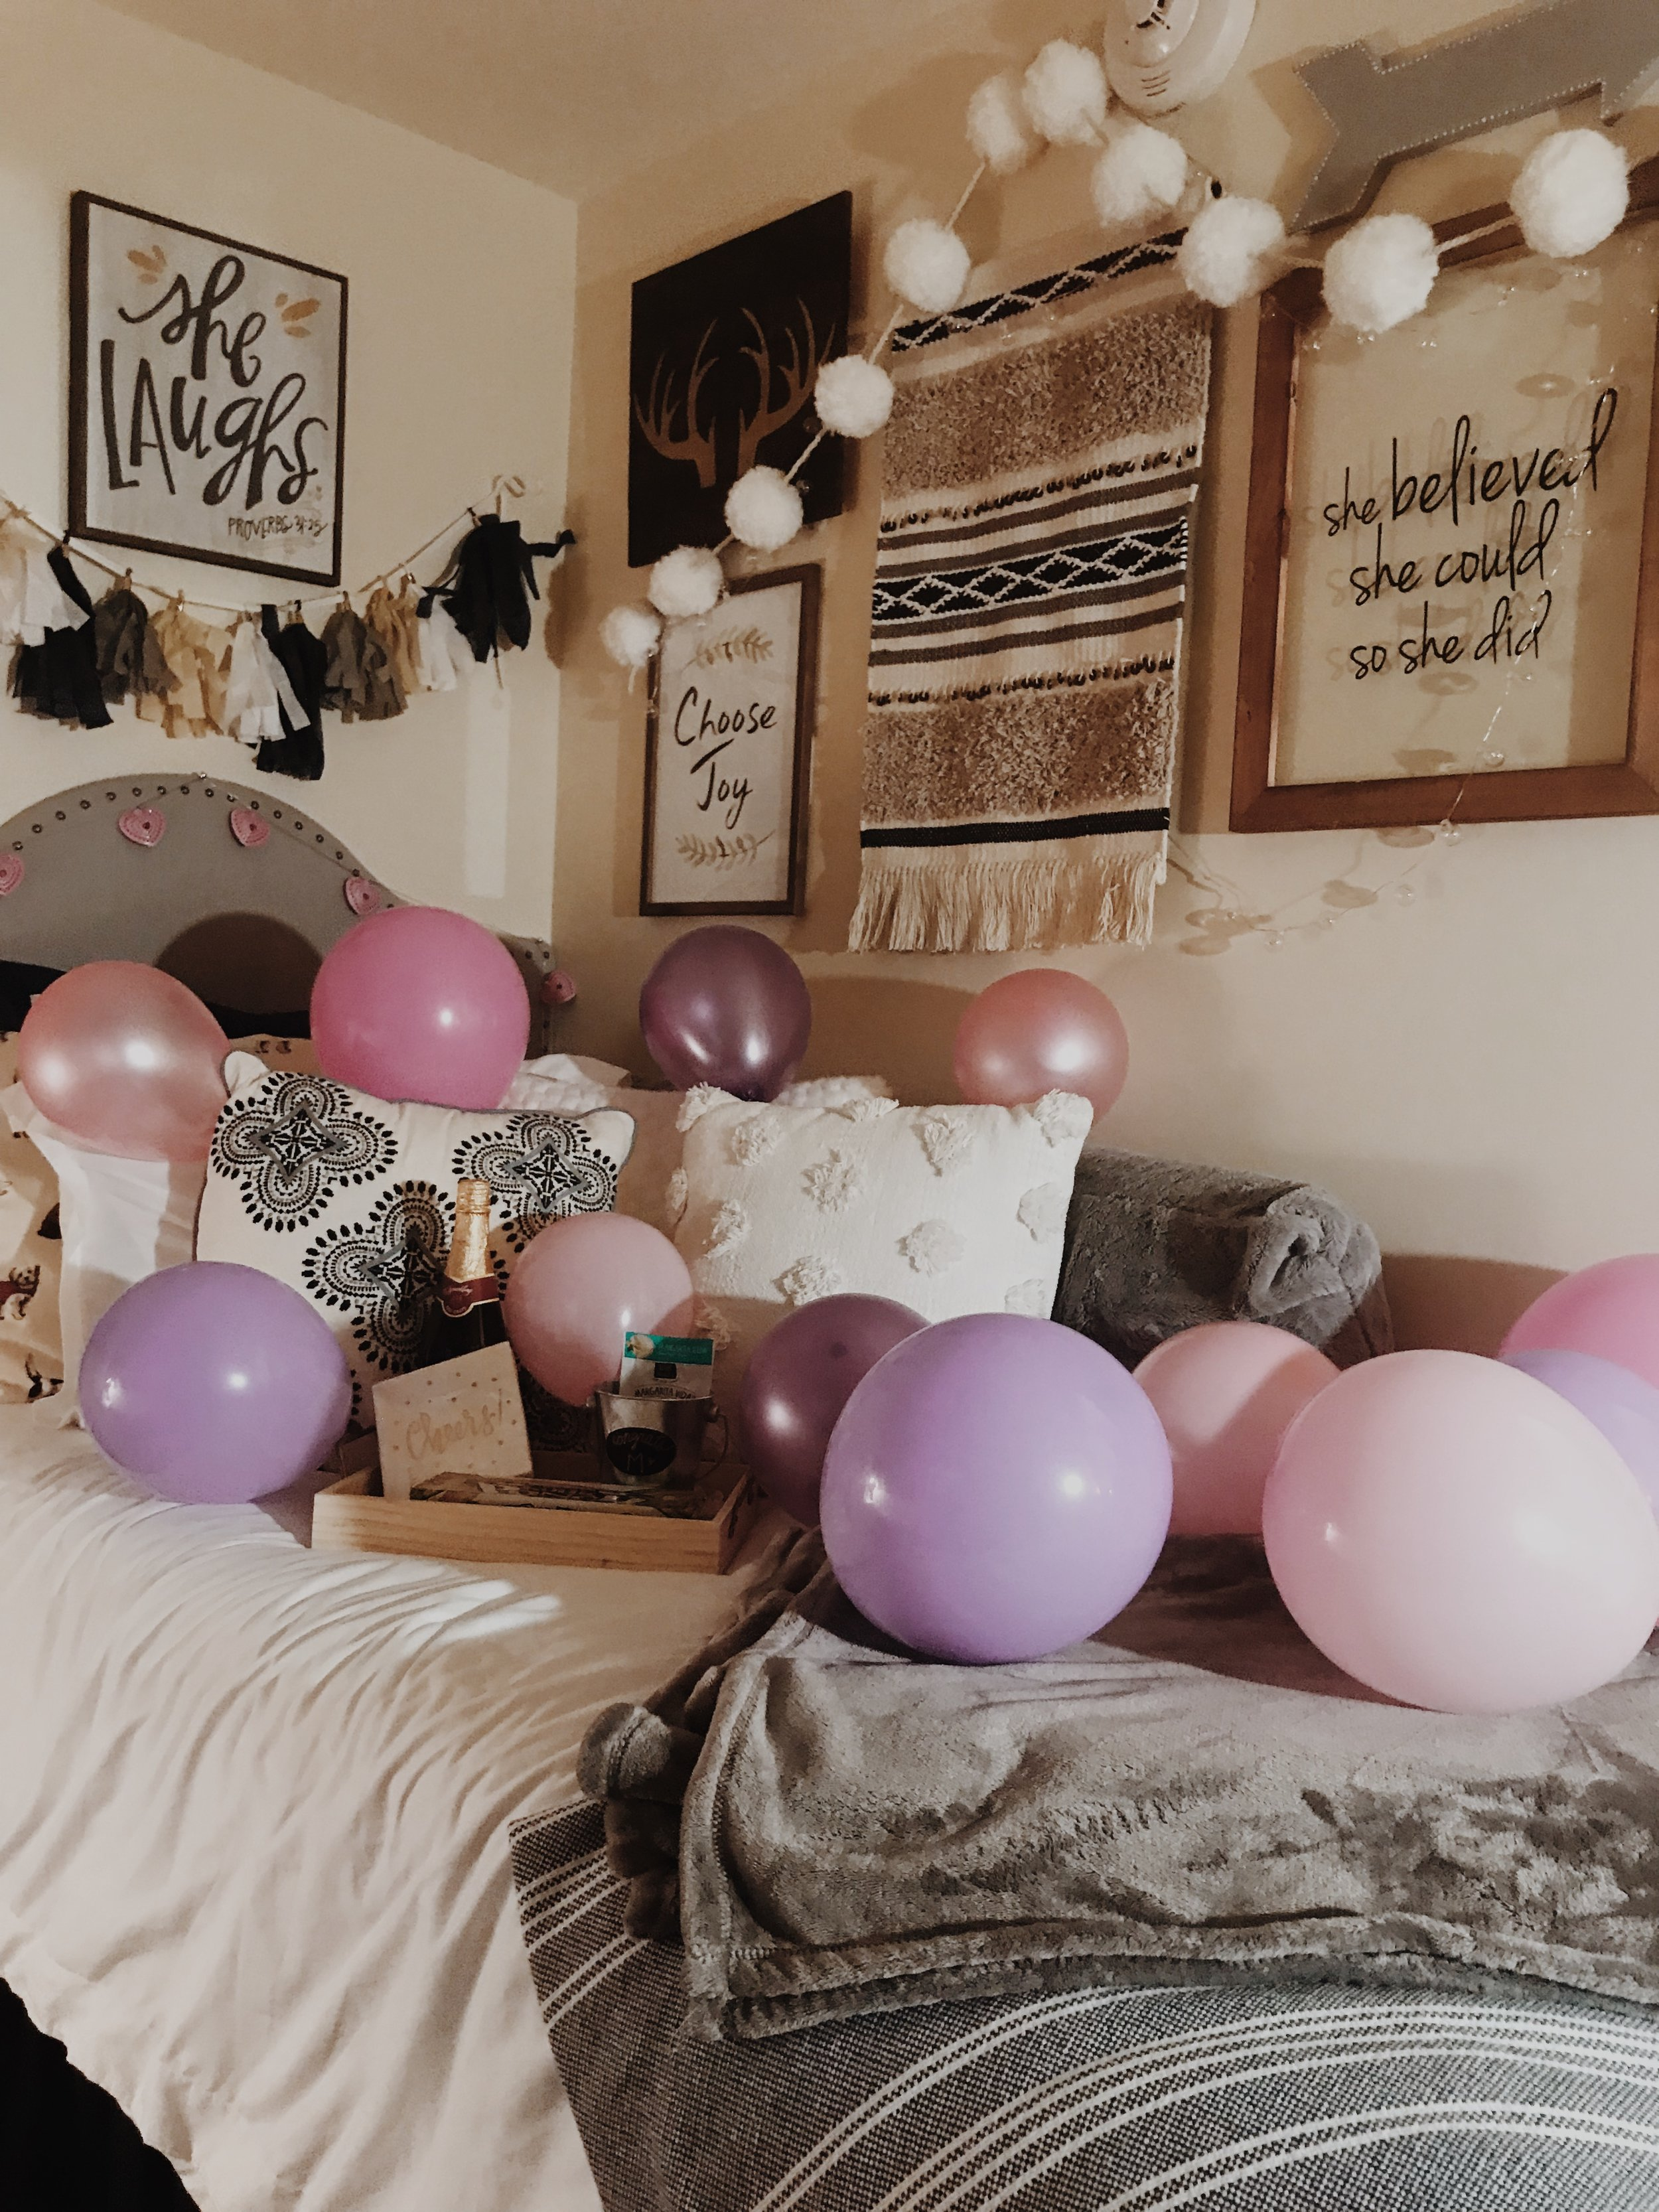 Micah decorated my room while I was gone so we could celebrate. She's the cutest.